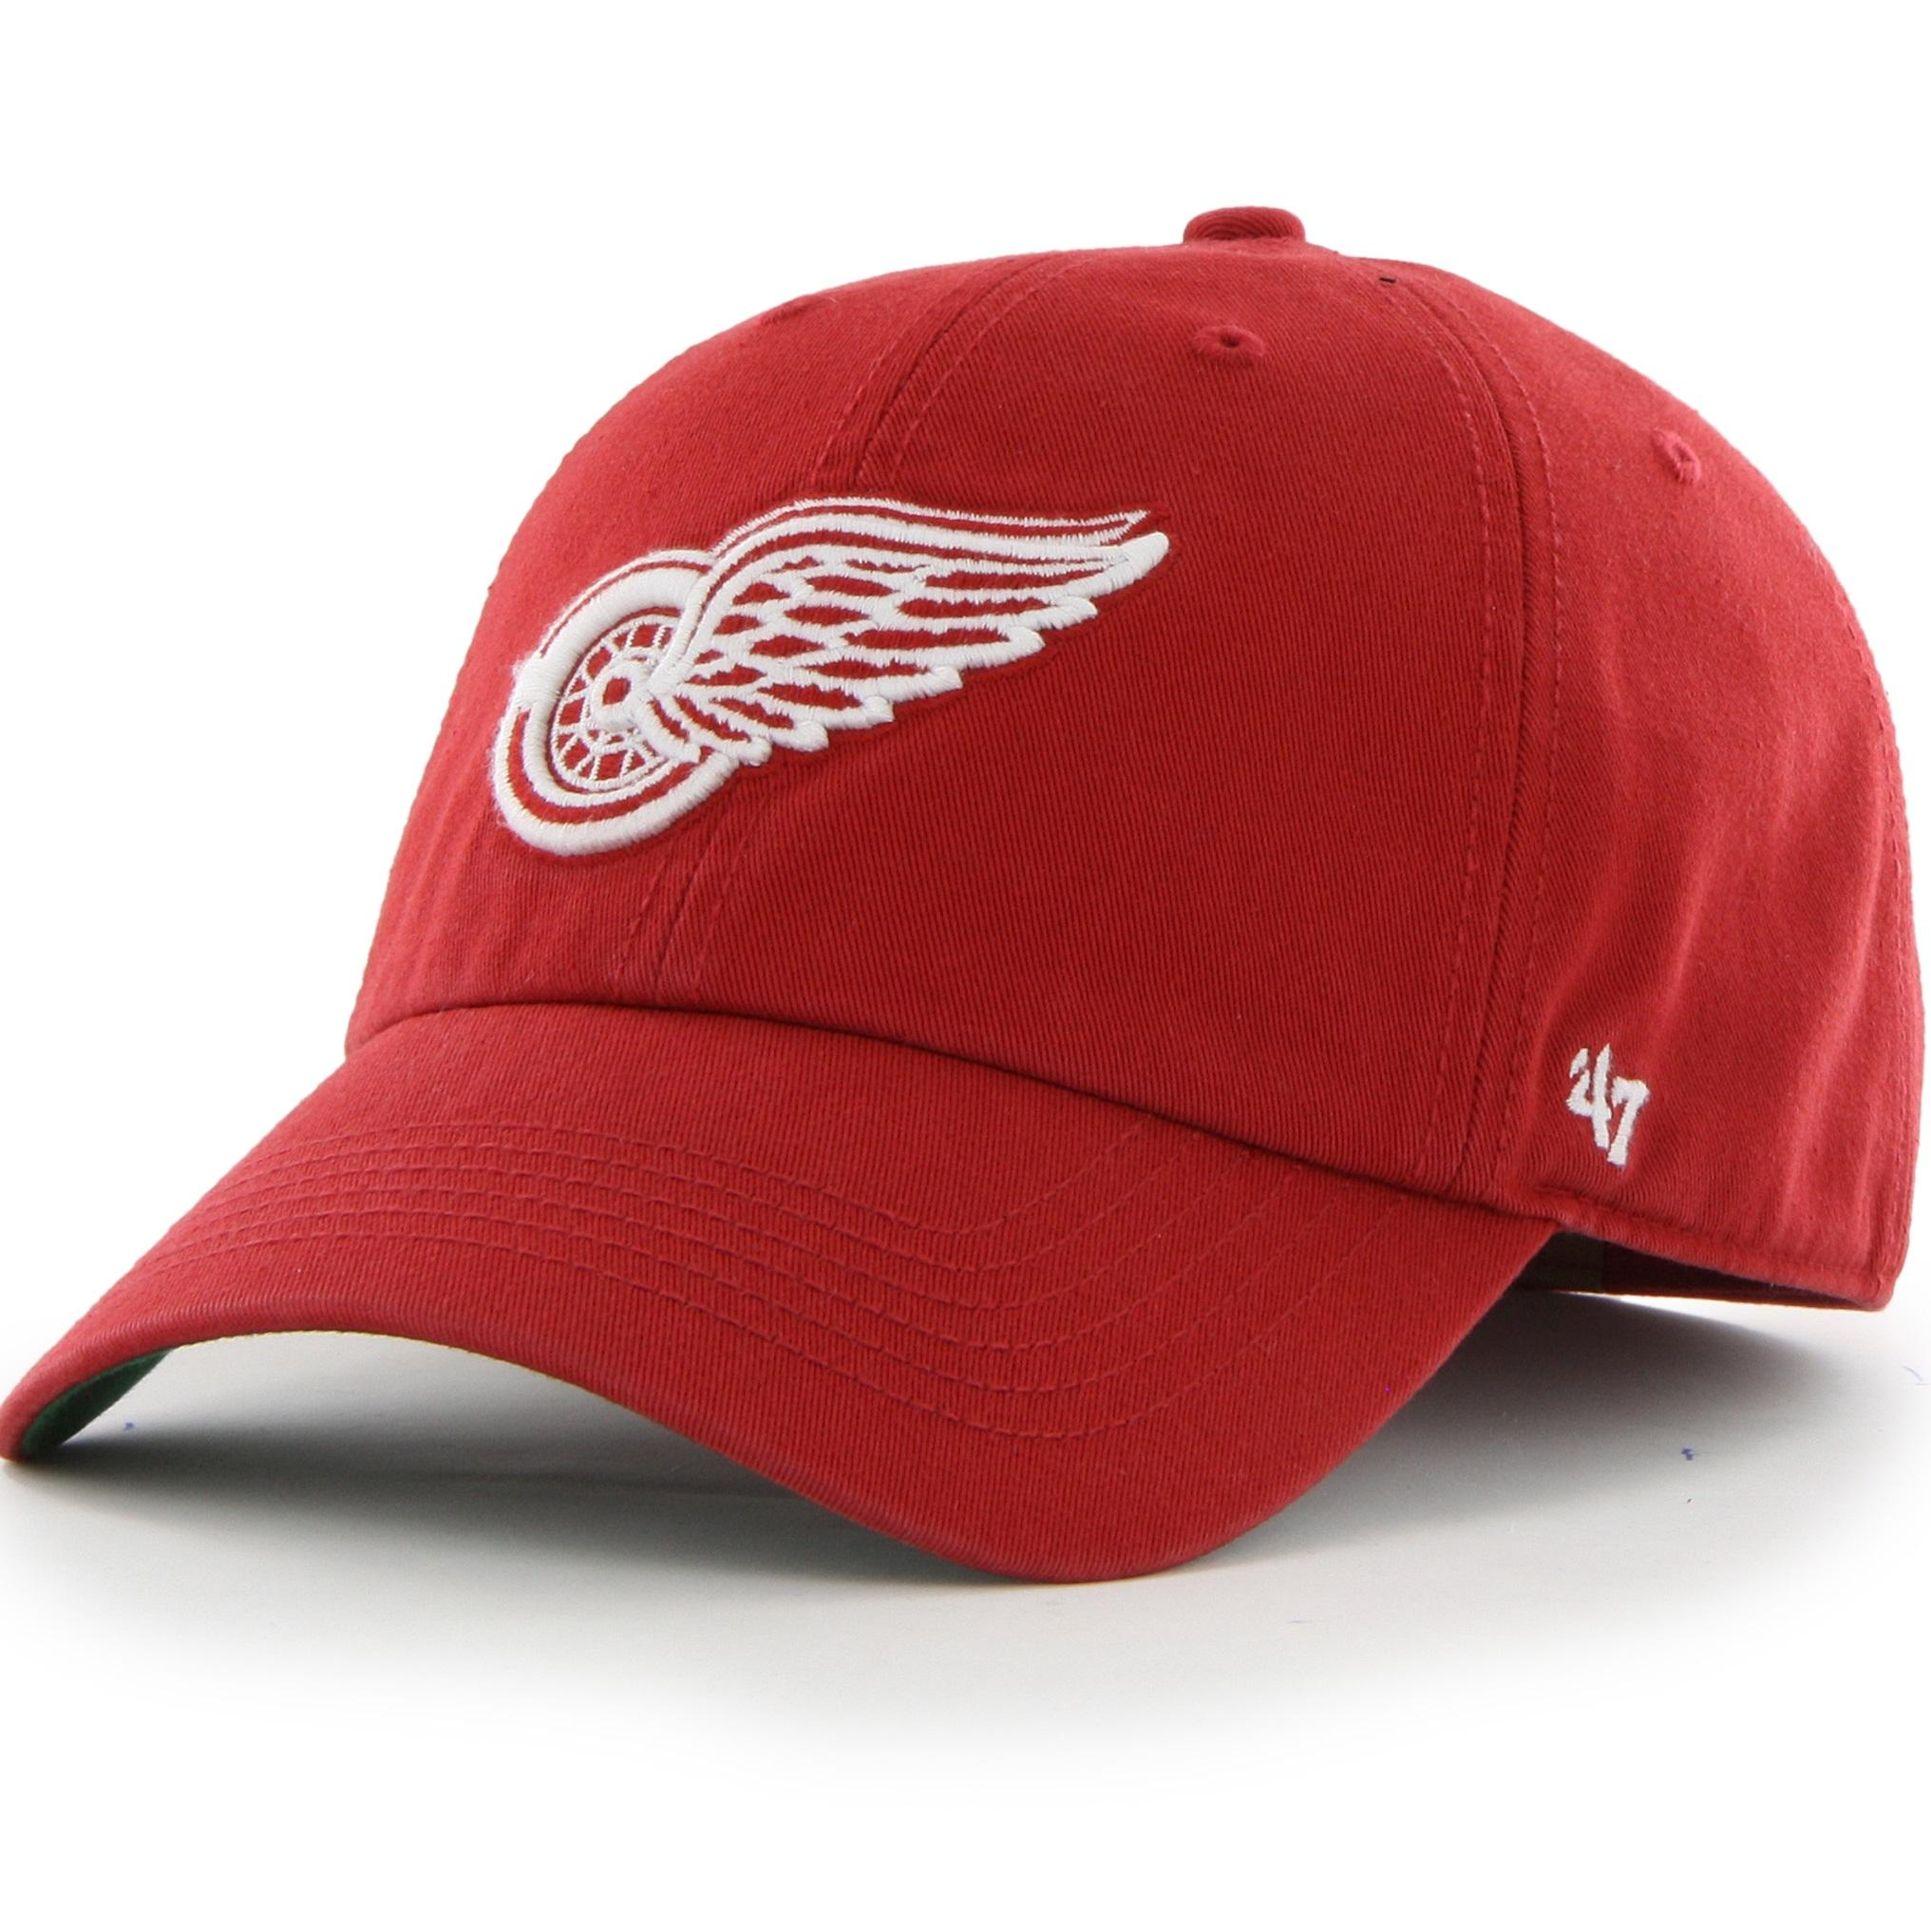 7f27dd975eb7b  47 Brand NHL Franchise Fitted Hat · View larger ·